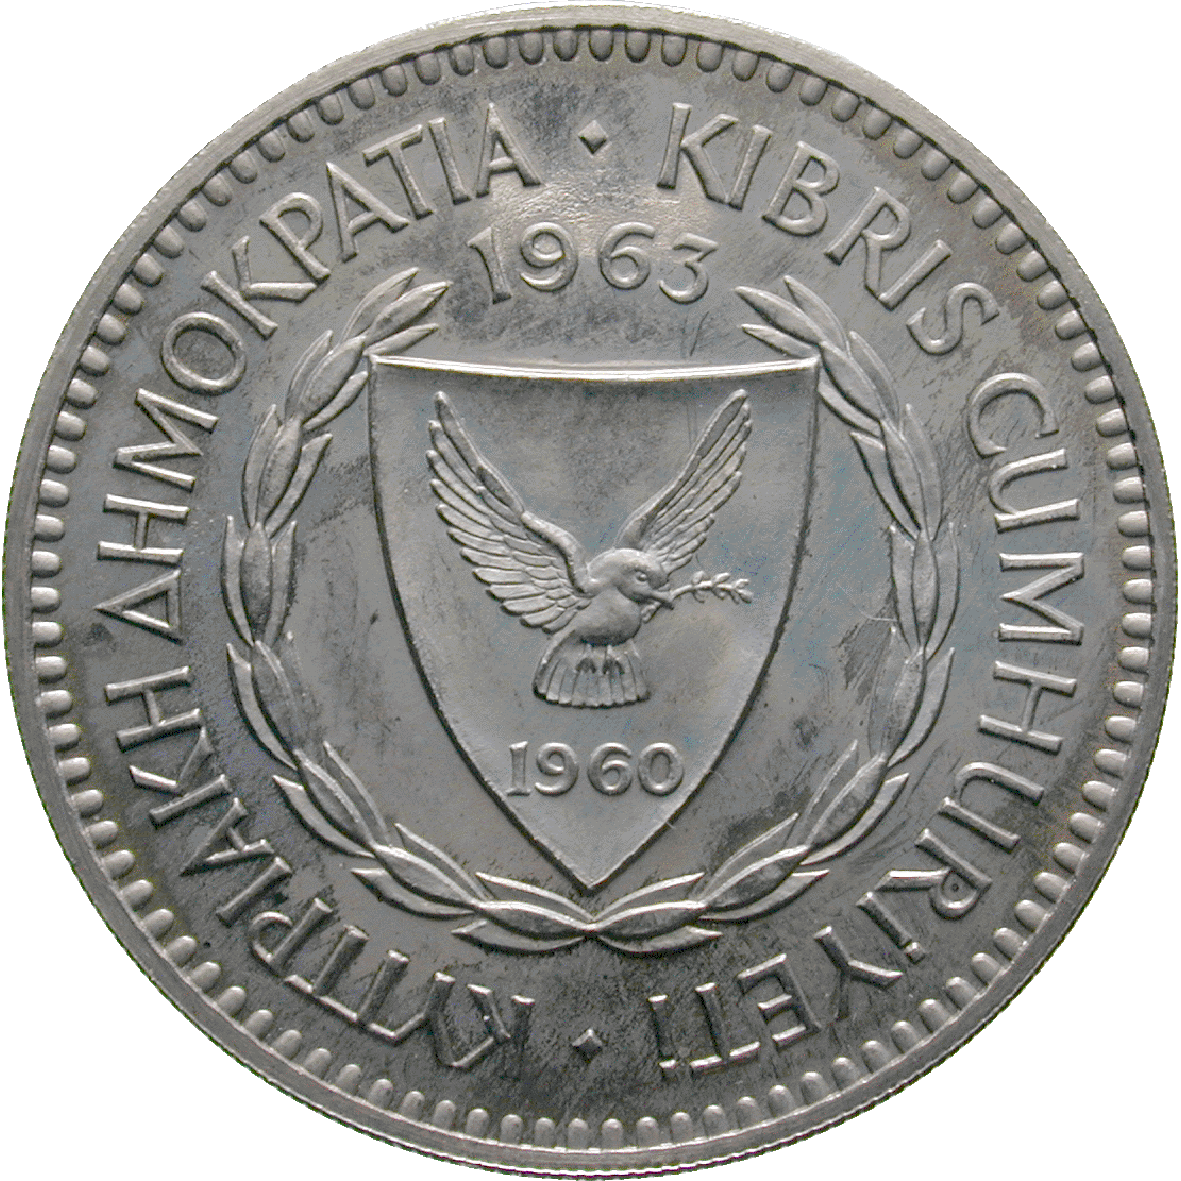 Republic of Cyprus, 100 Mils 1963 (obverse)